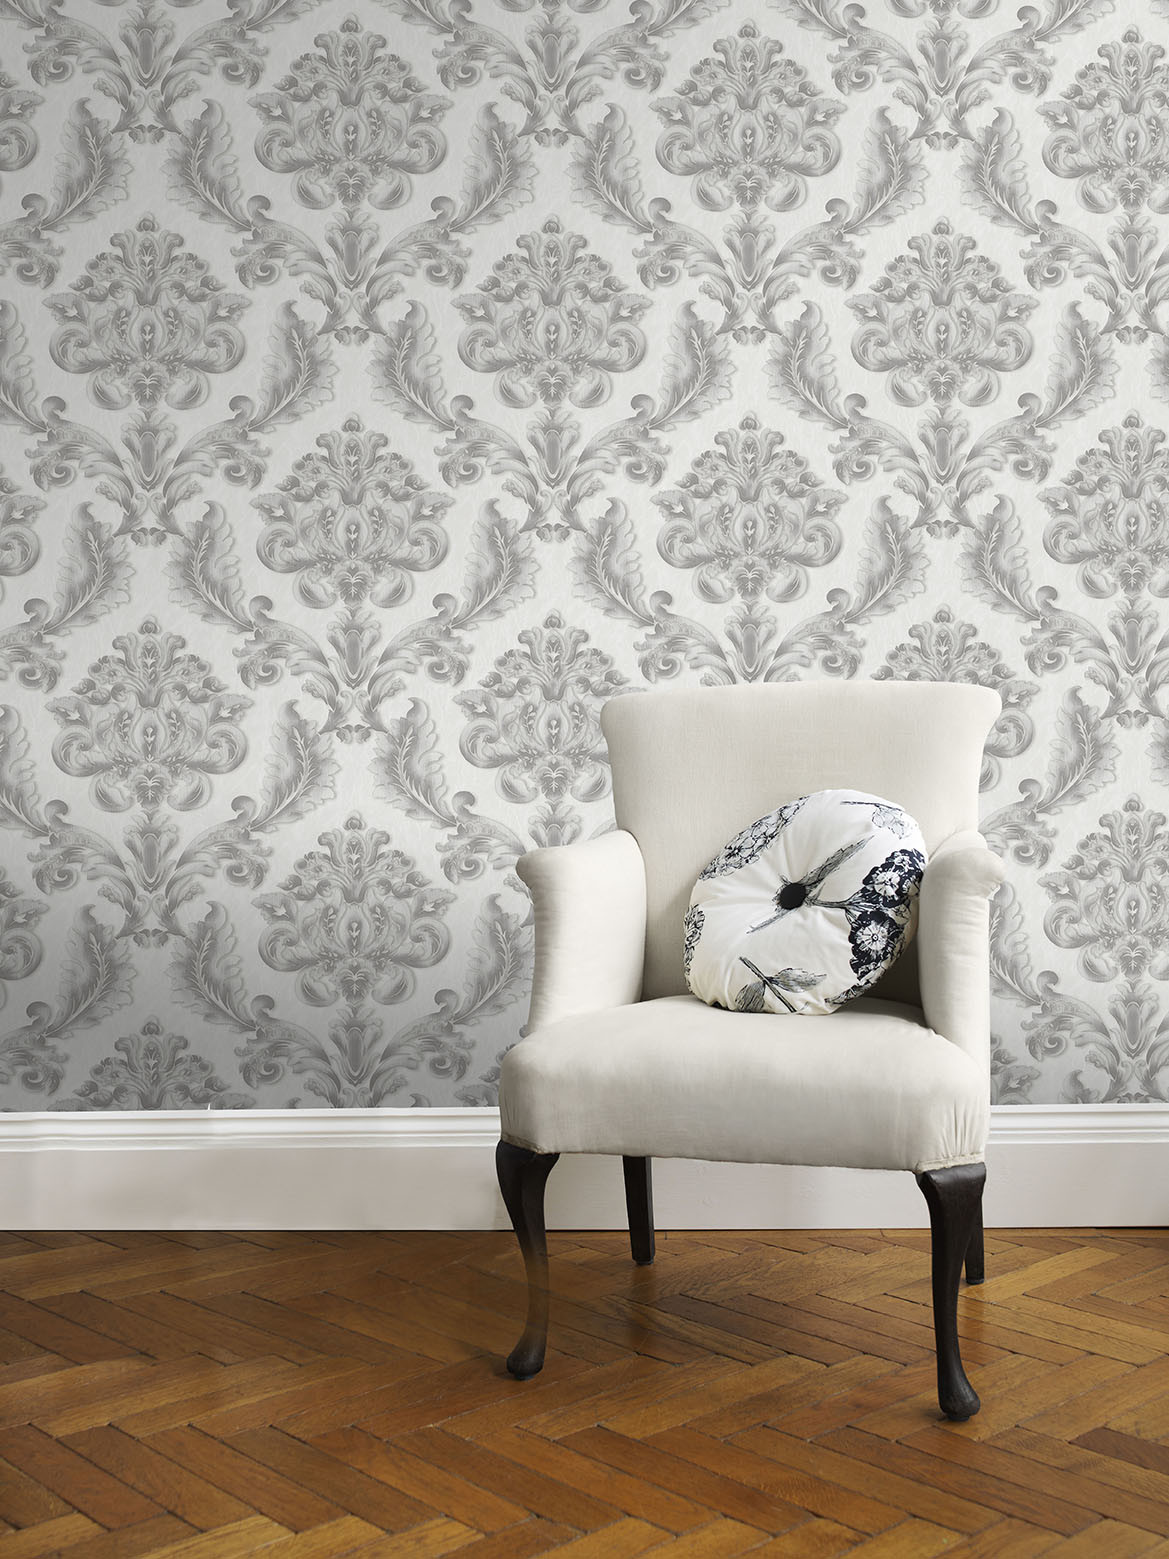 China 1 06m Wholesale Price Pvc Vinyl Damask Wallpaper For Home Decoration